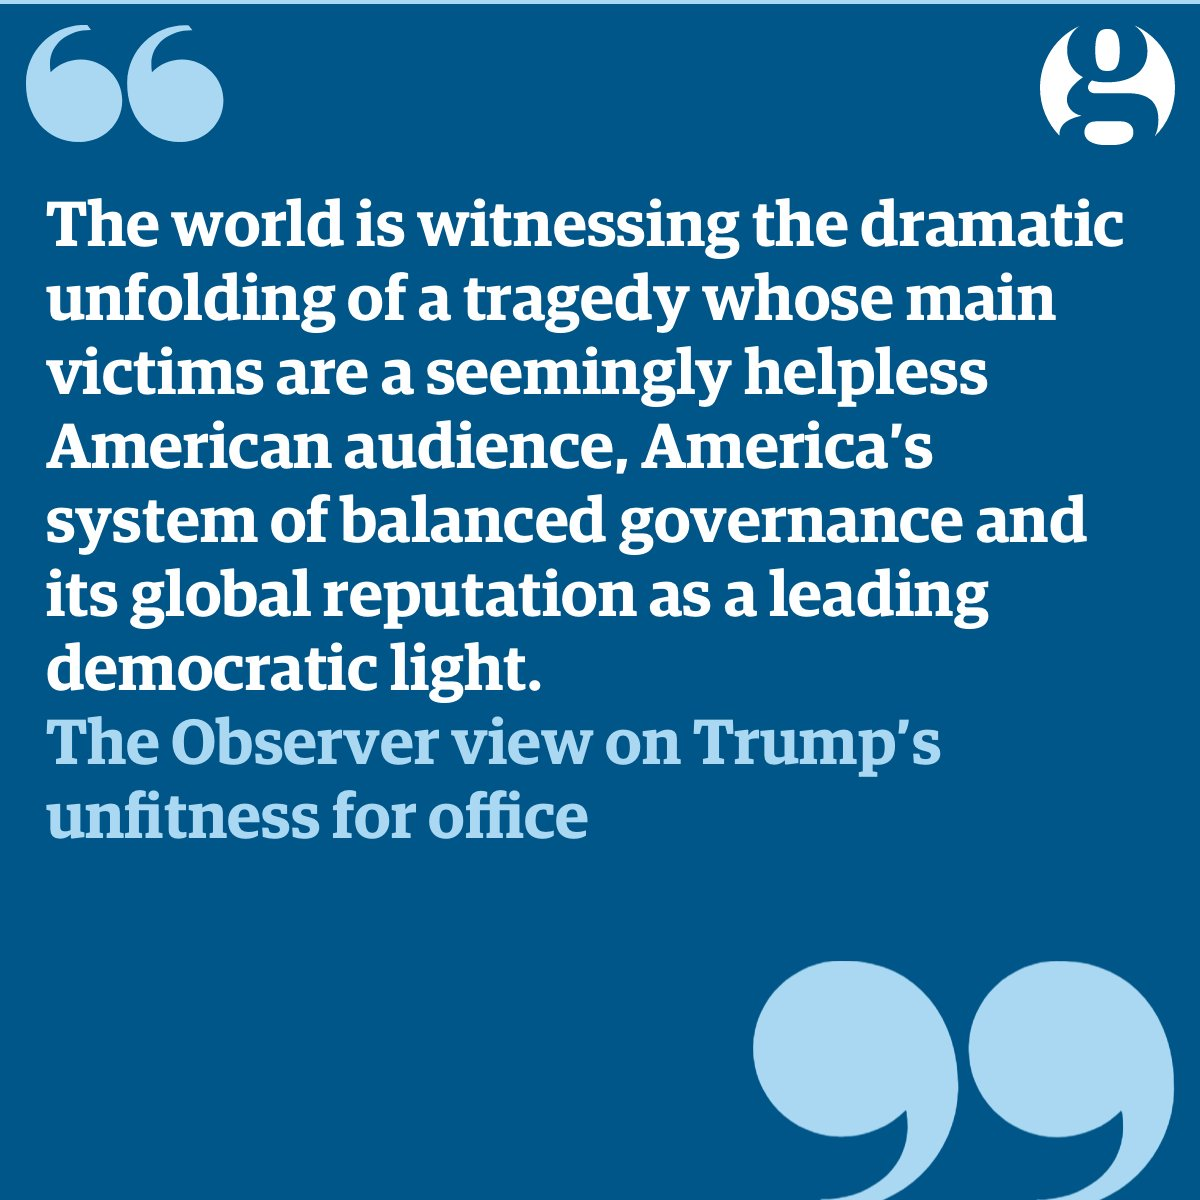 The Observer view on Donald Trump's unfitness for office | Observer editorial